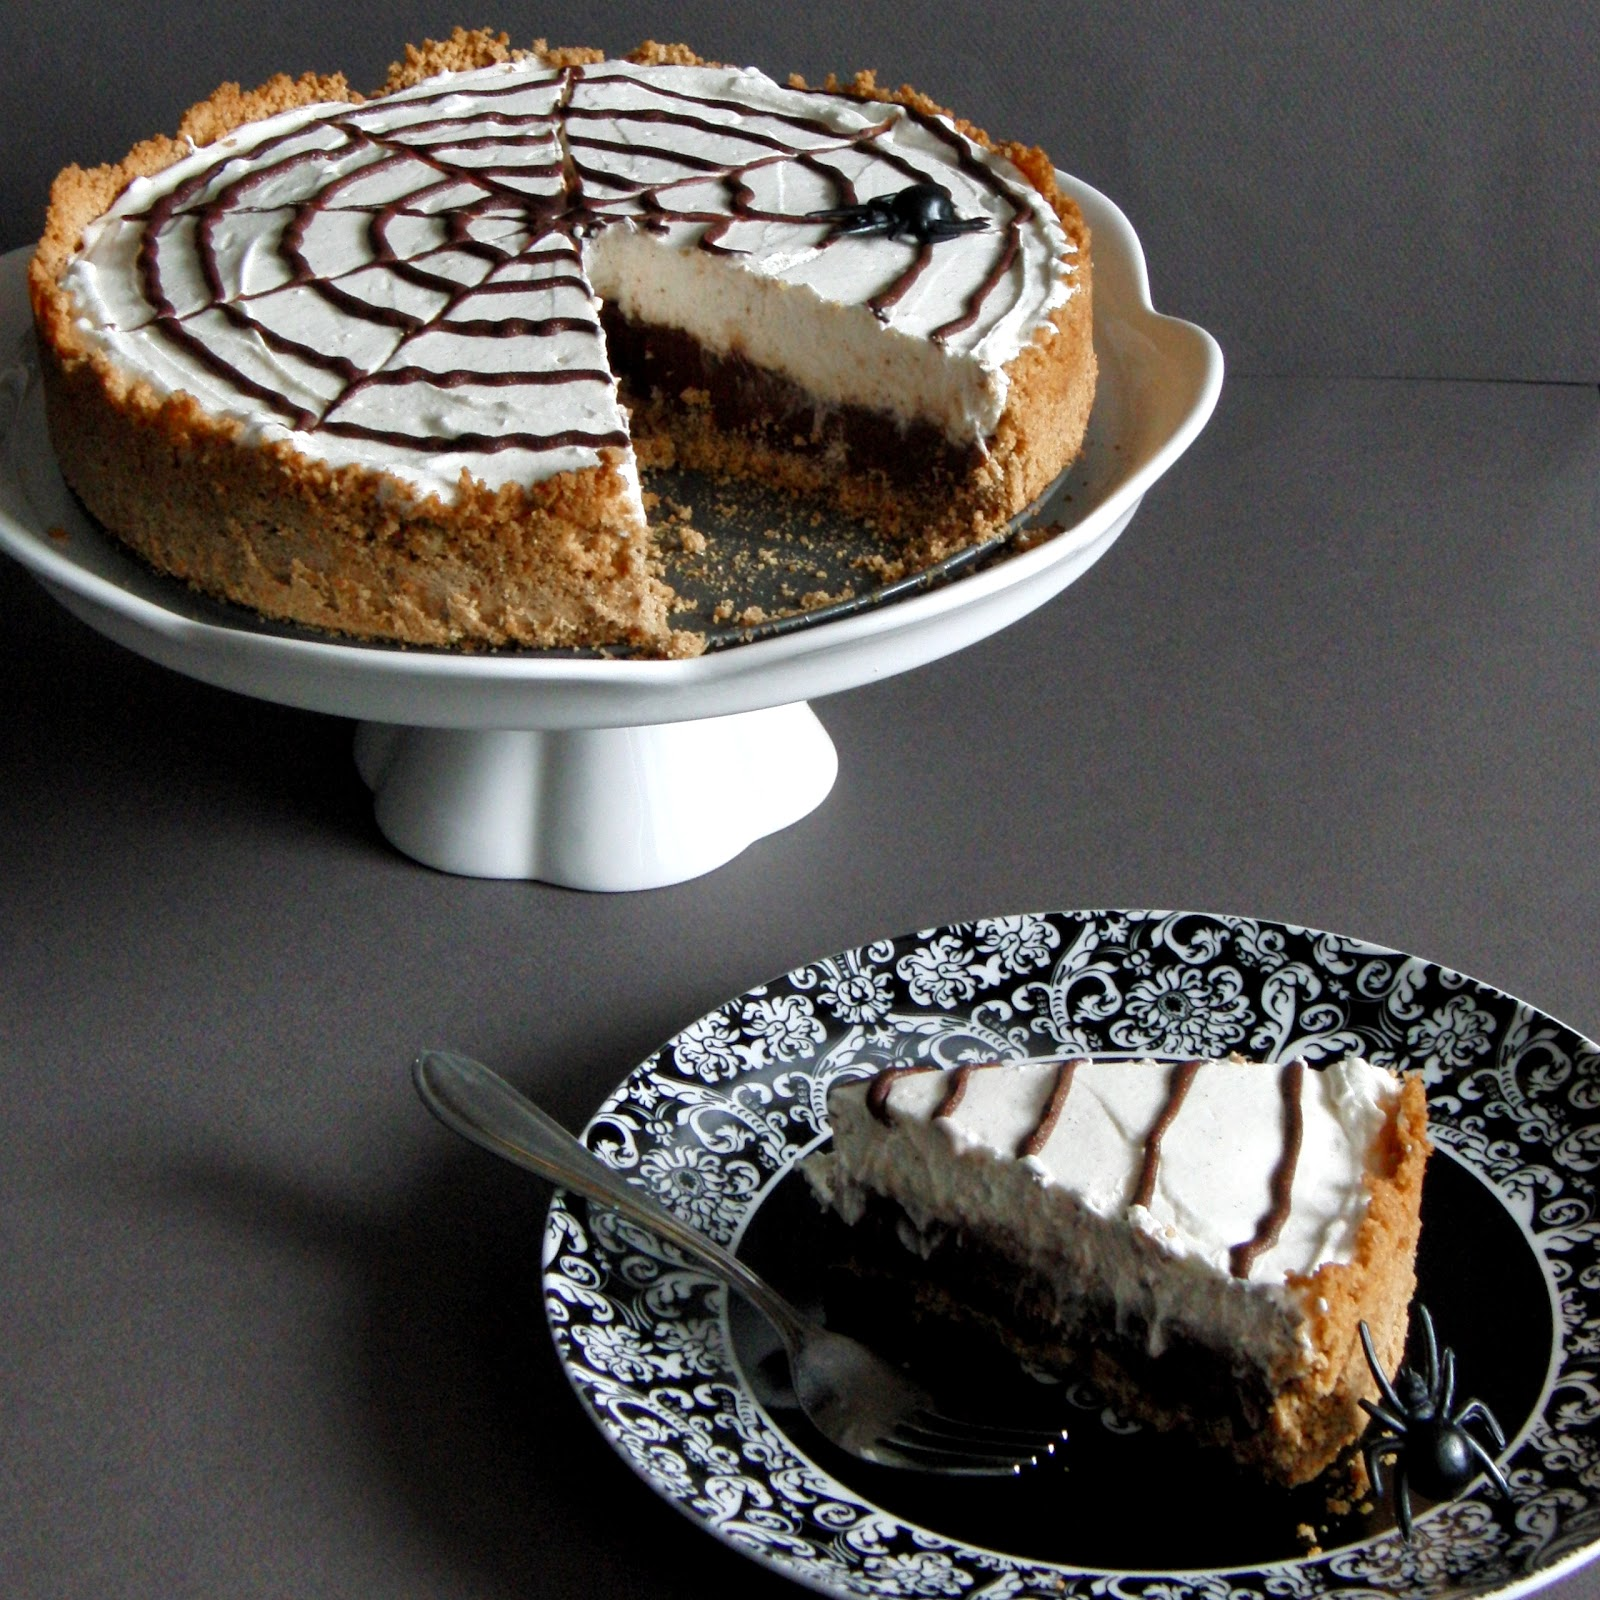 ... Pie for Halloween... Chocolate Caramel Cream Pie with a Chocolate